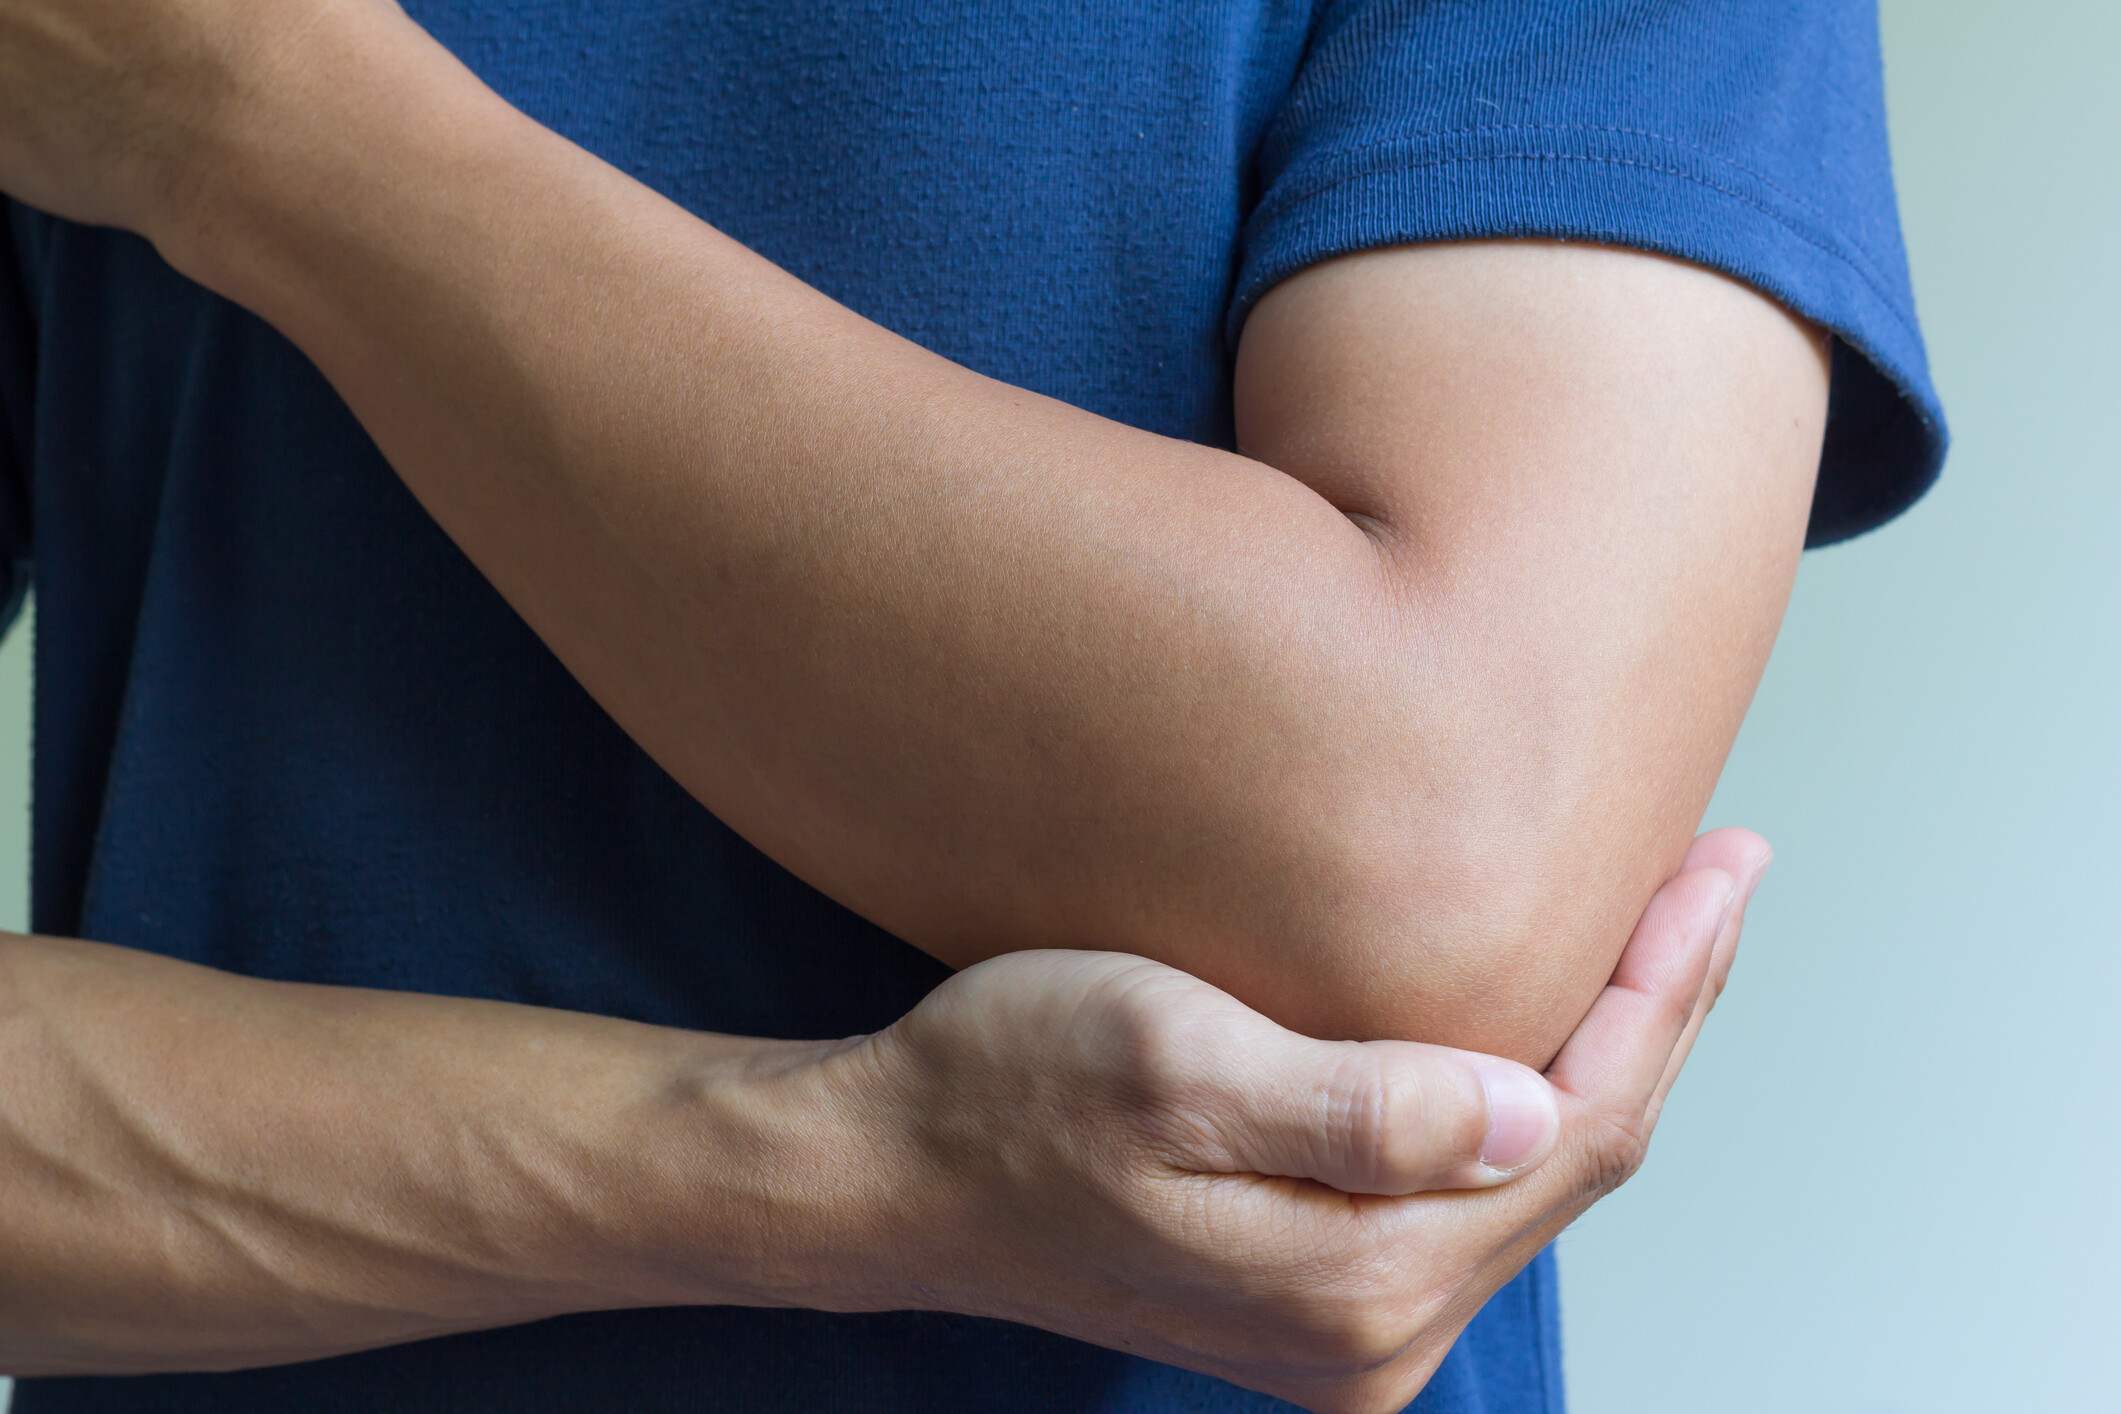 eople tend to overuse their elbow by playing sports with causes Elbow Pain and injury